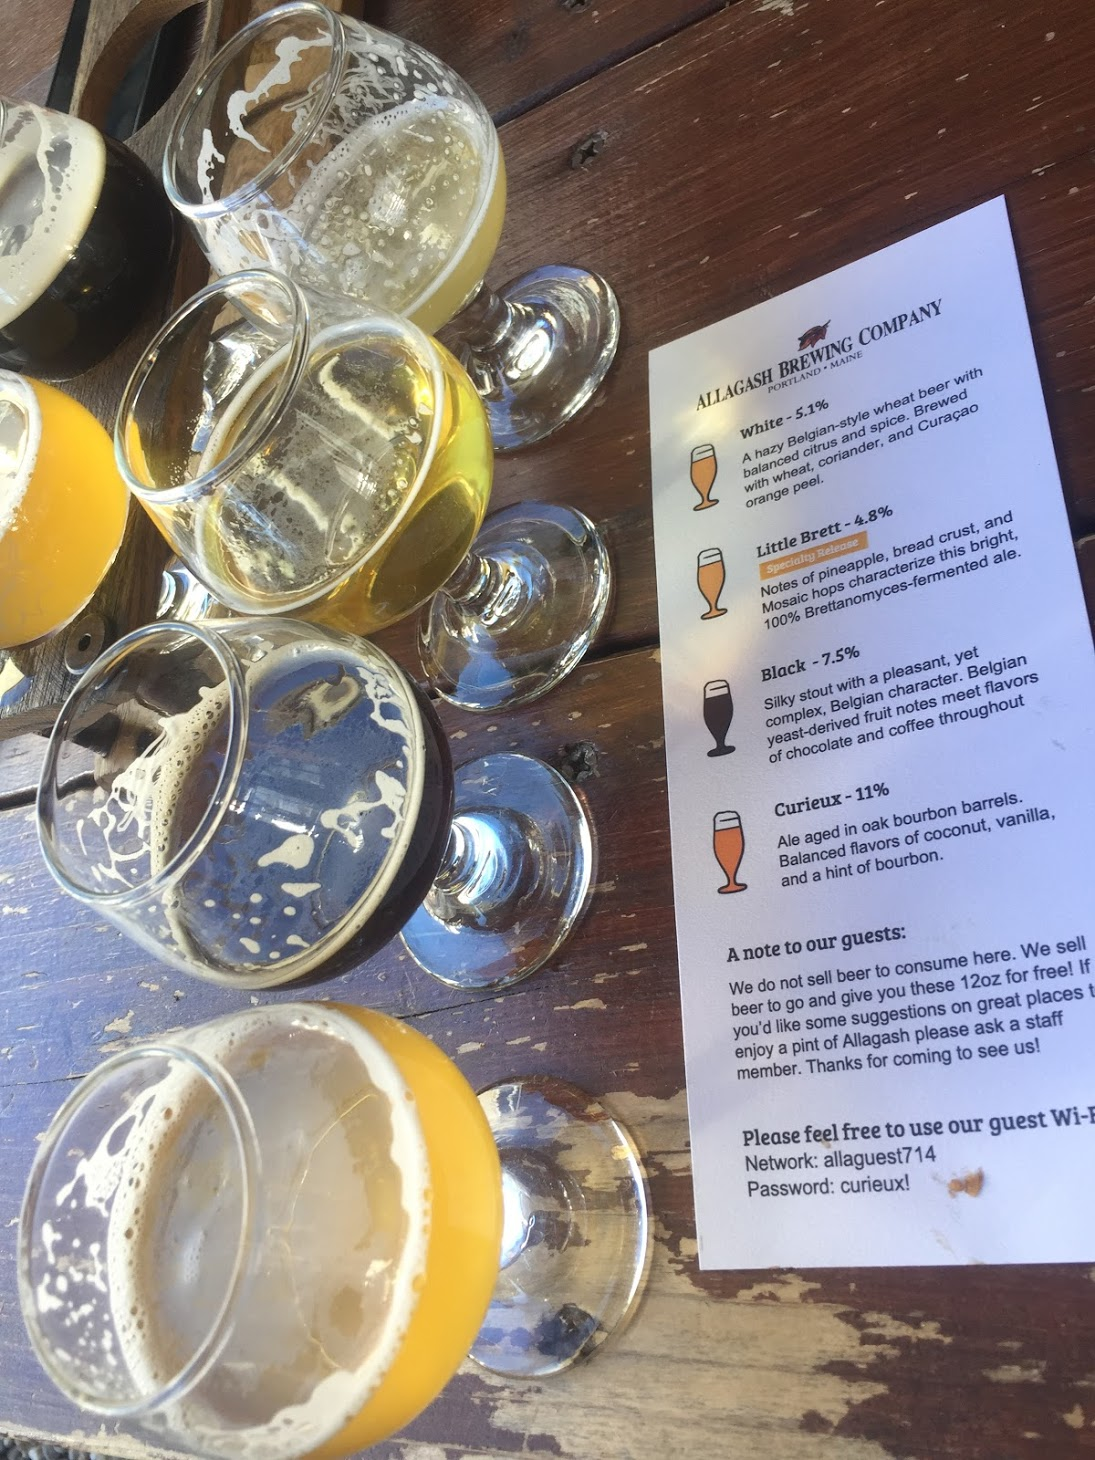 Flight Allagash